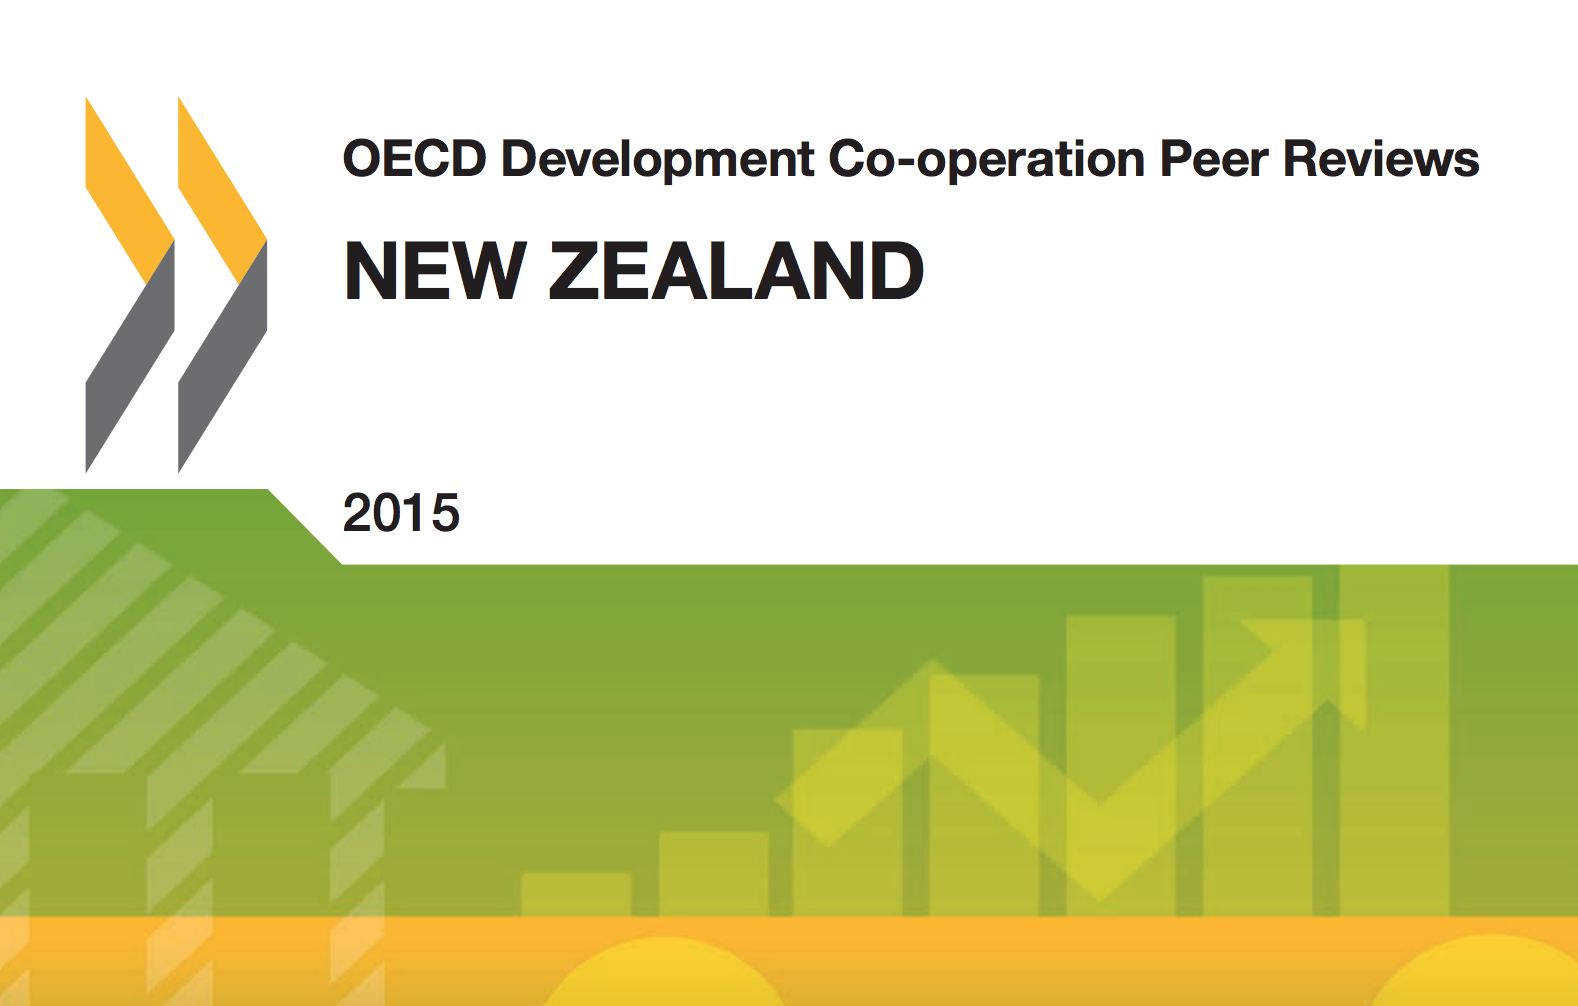 OECD NZ Peer Review